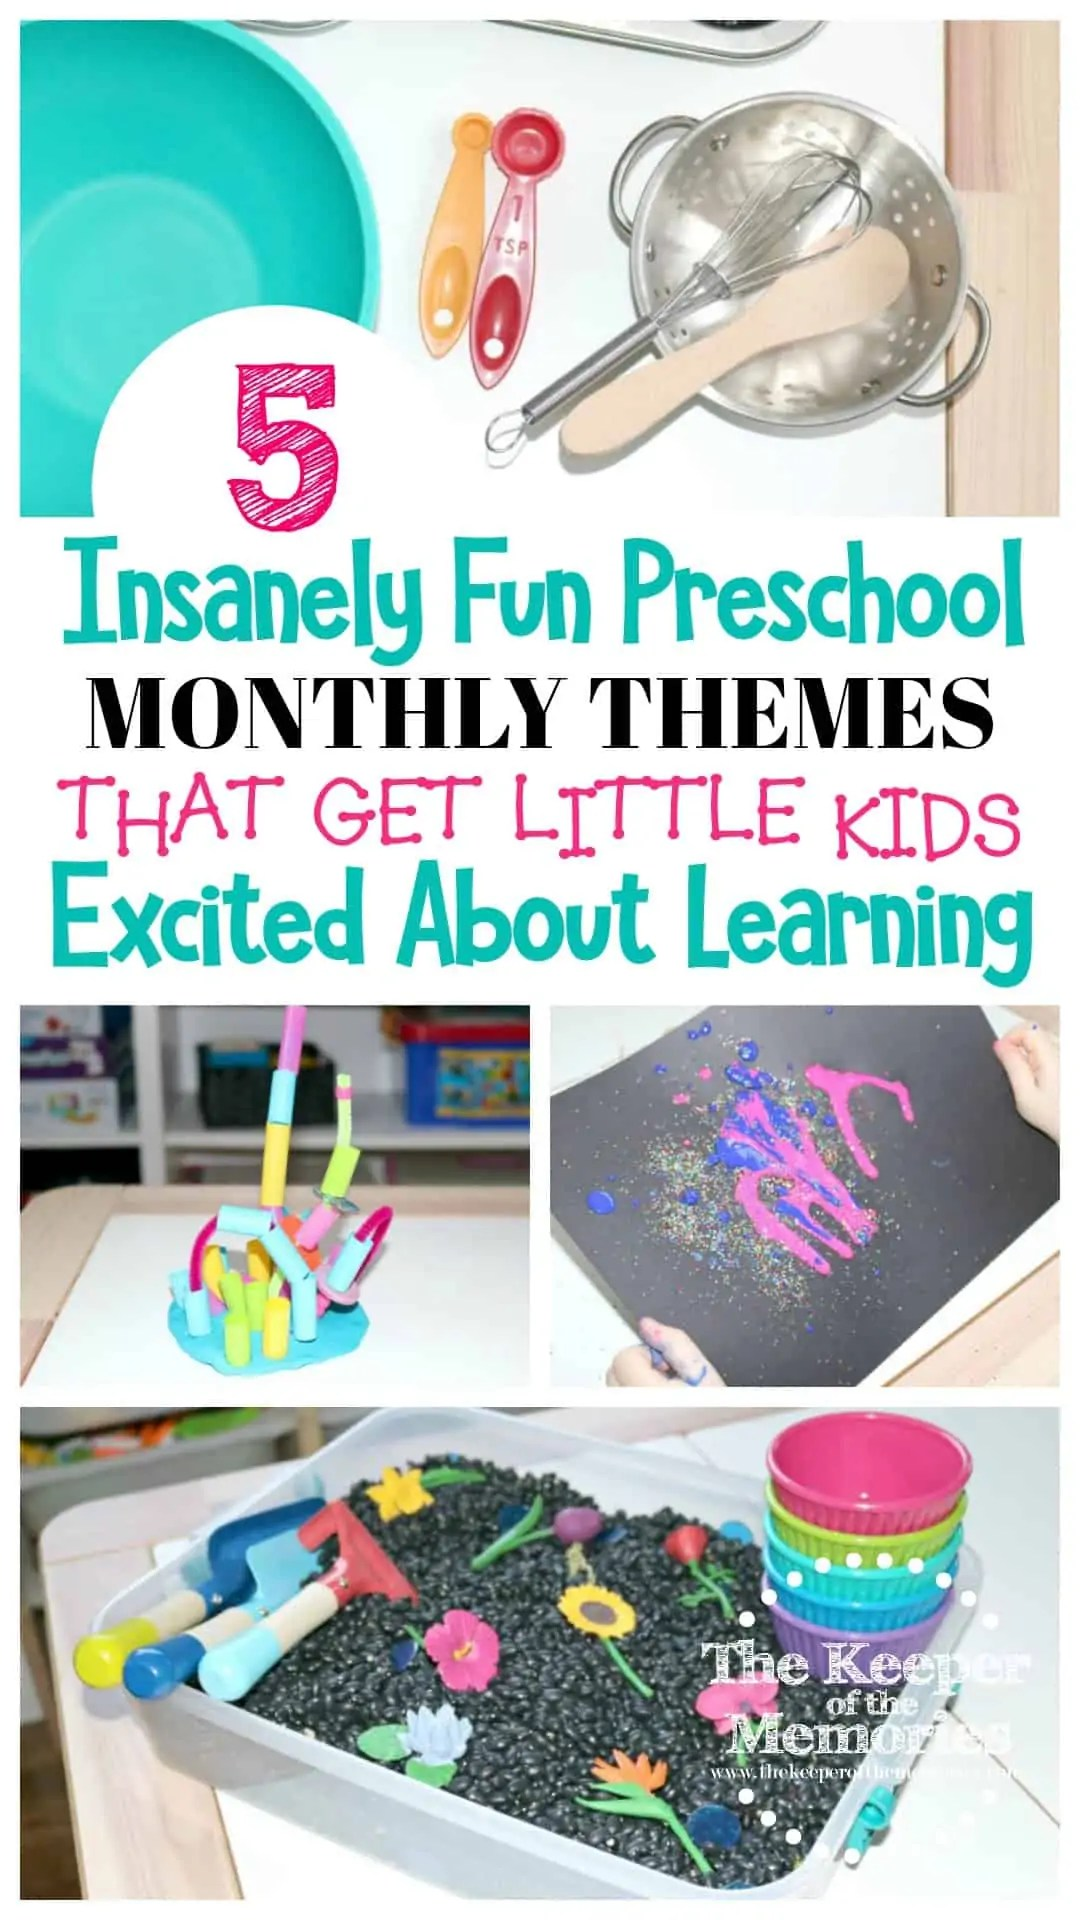 5 Insanely Fun Preschool Monthly Themes That Get Little